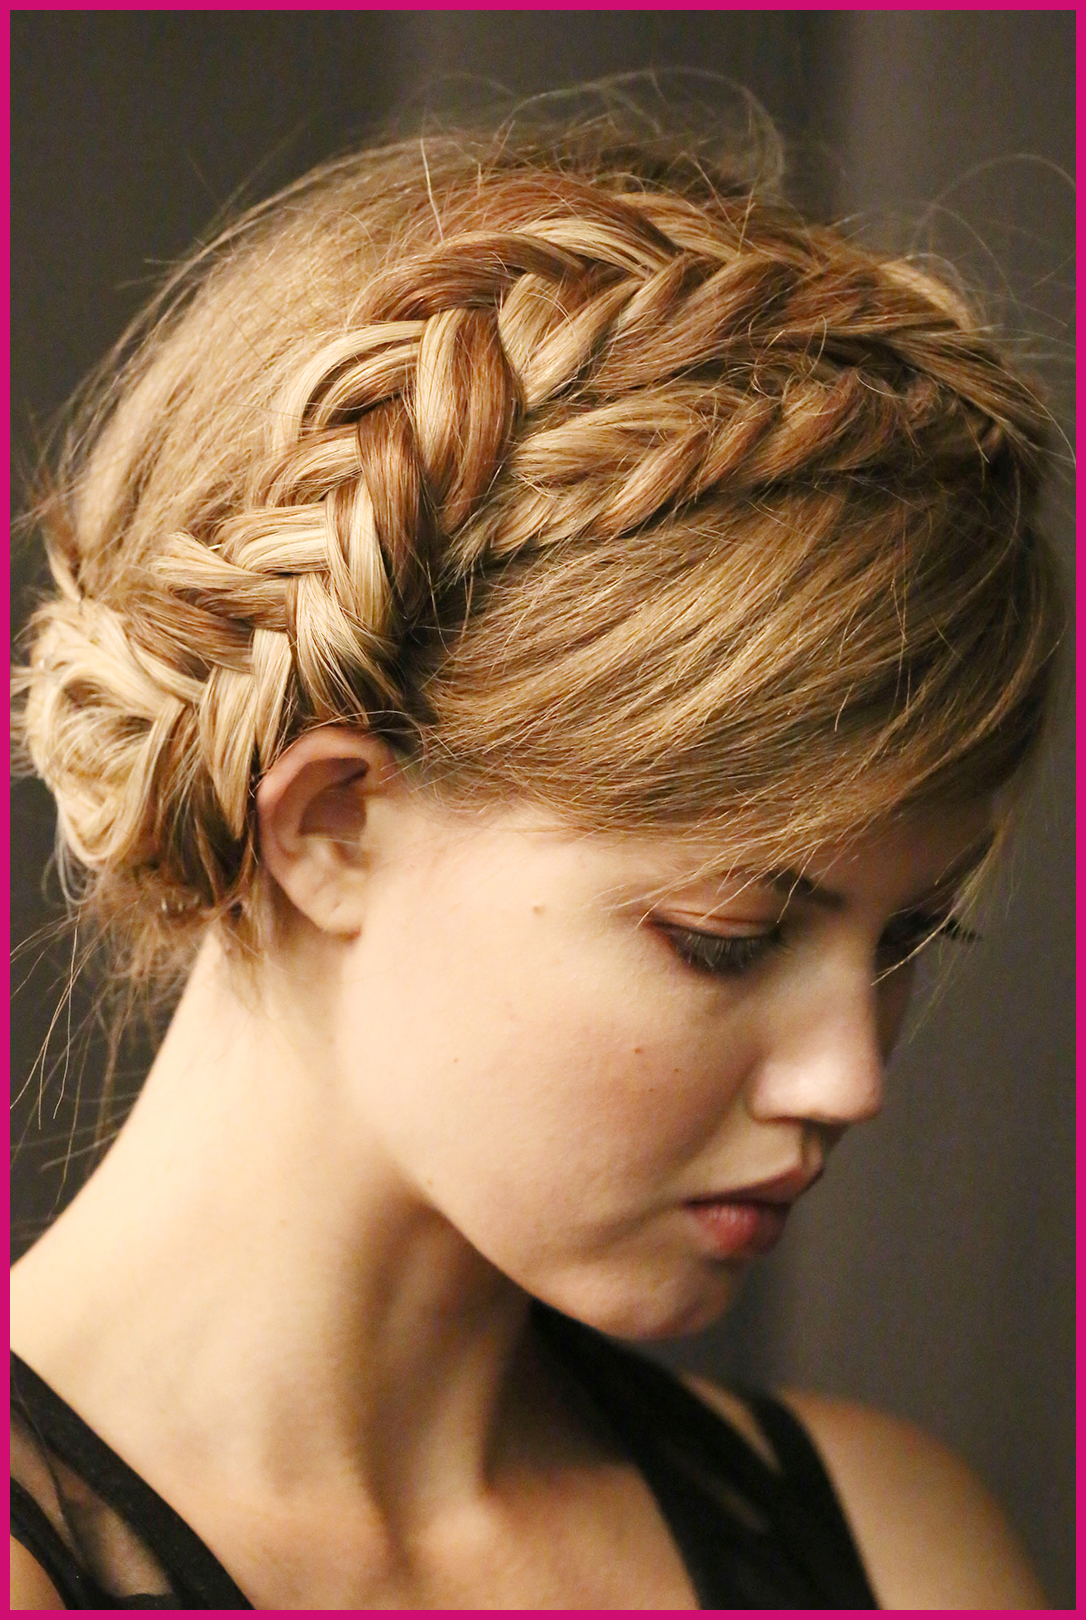 Beautiful braids